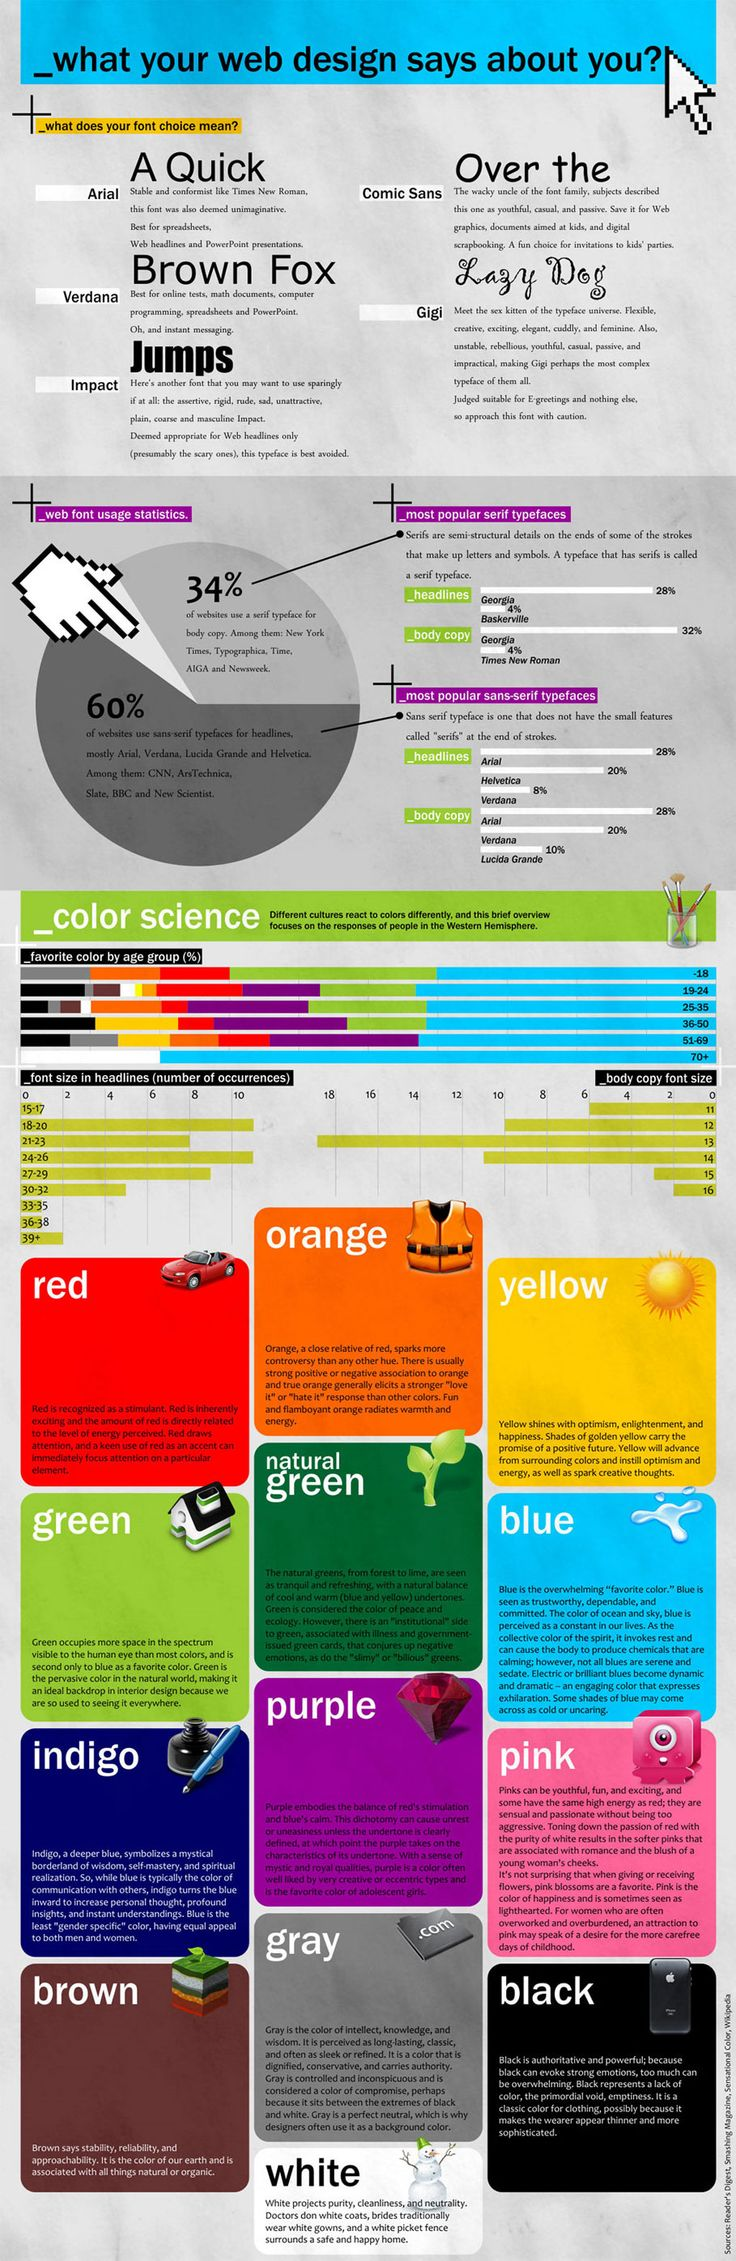 what your web design says about you?